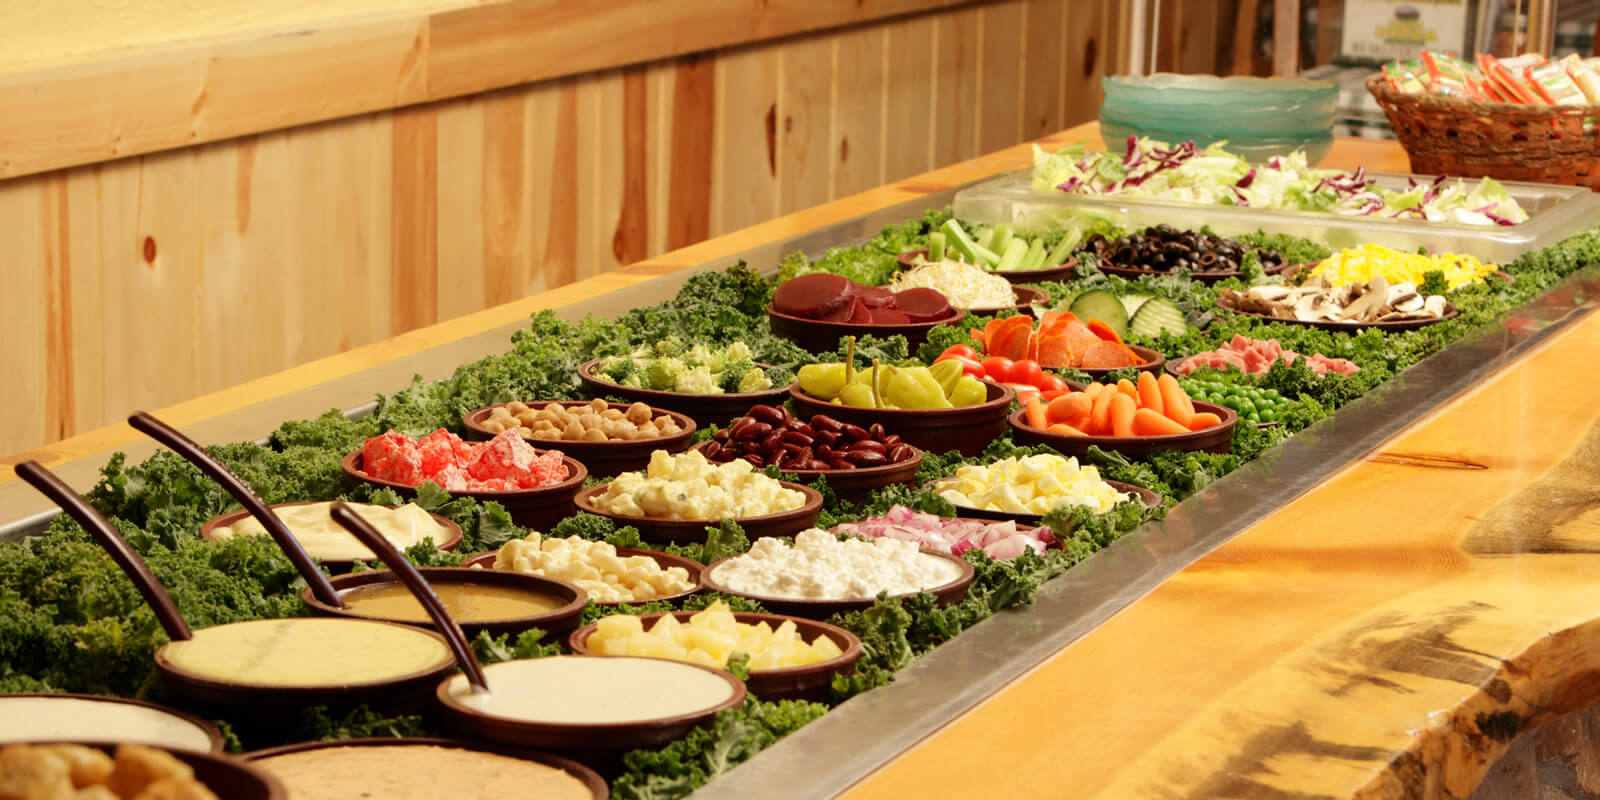 Salad bar ideas images galleries with for Salas ideas